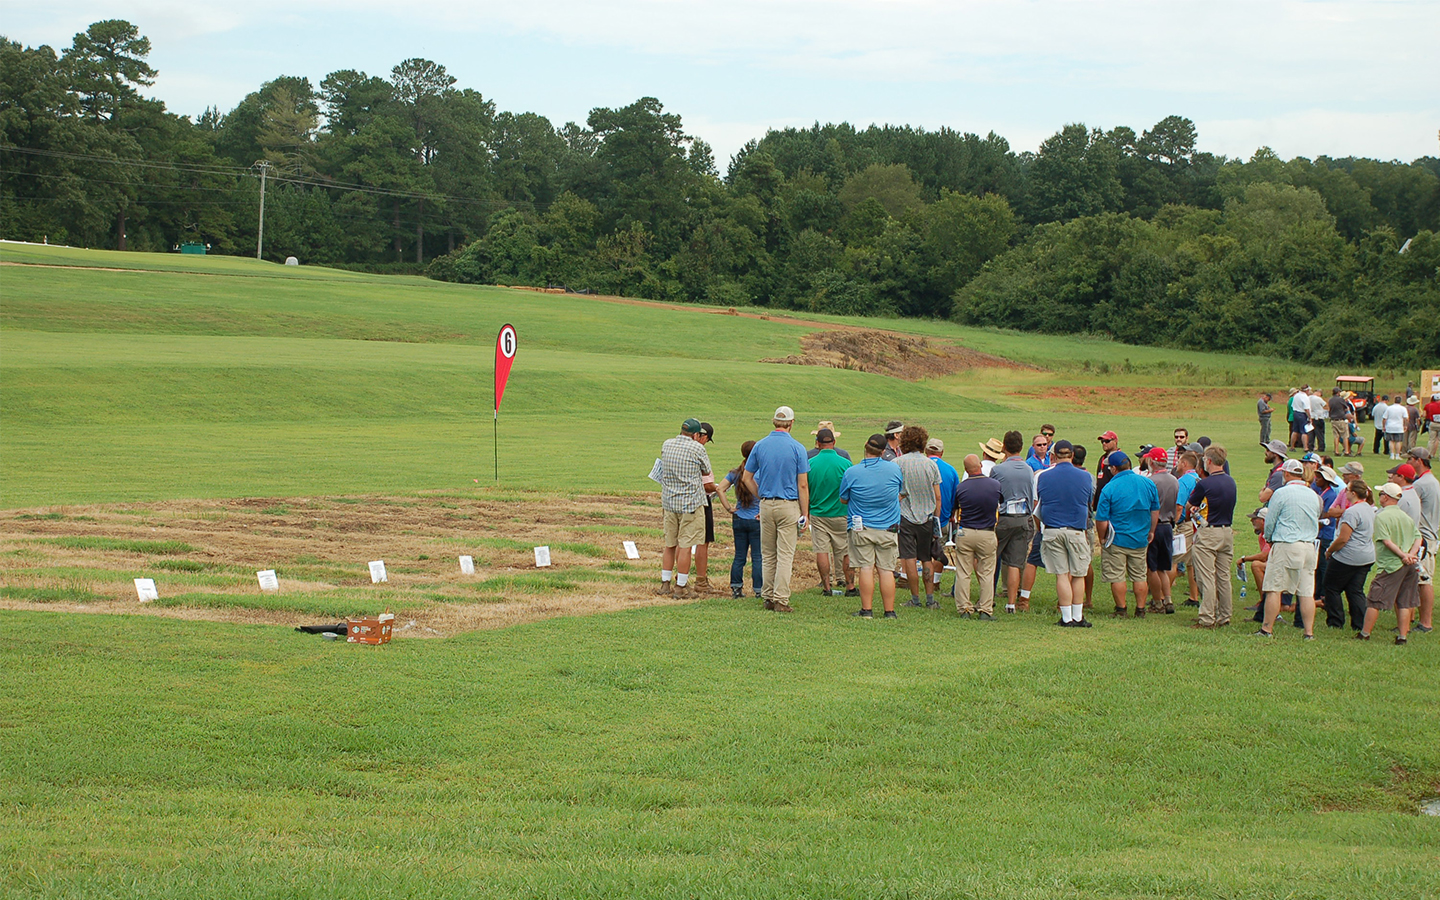 NC States turf research lab gives students hands-on learning opportunities